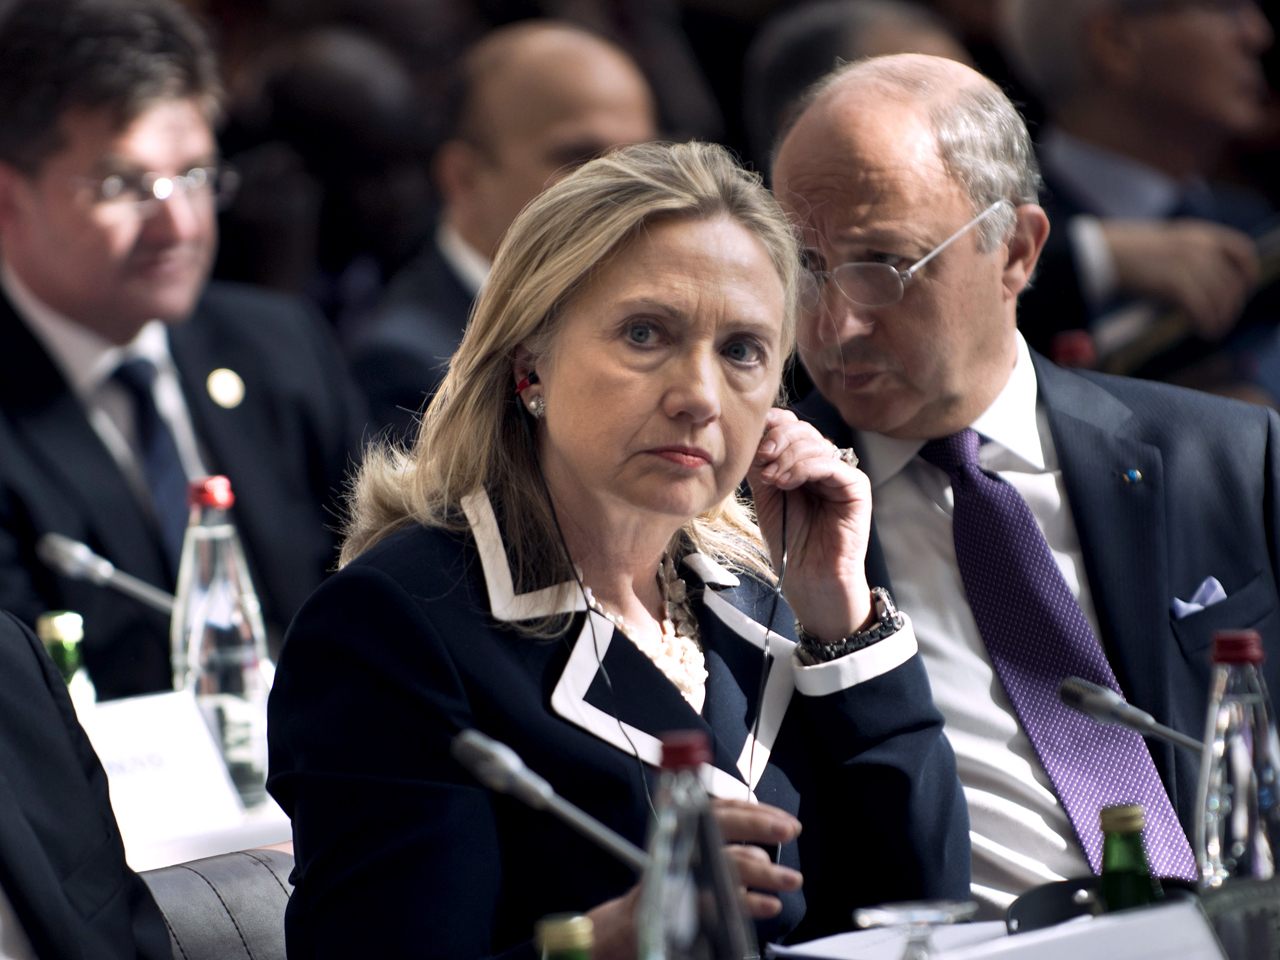 """U.S. Secretary of State Hillary Rodham Clinton listens during a meeting of the """"Friends of the Syrian People"""" at the MFA Conference Center July 6, 2012 in Paris, France. (Getty)"""